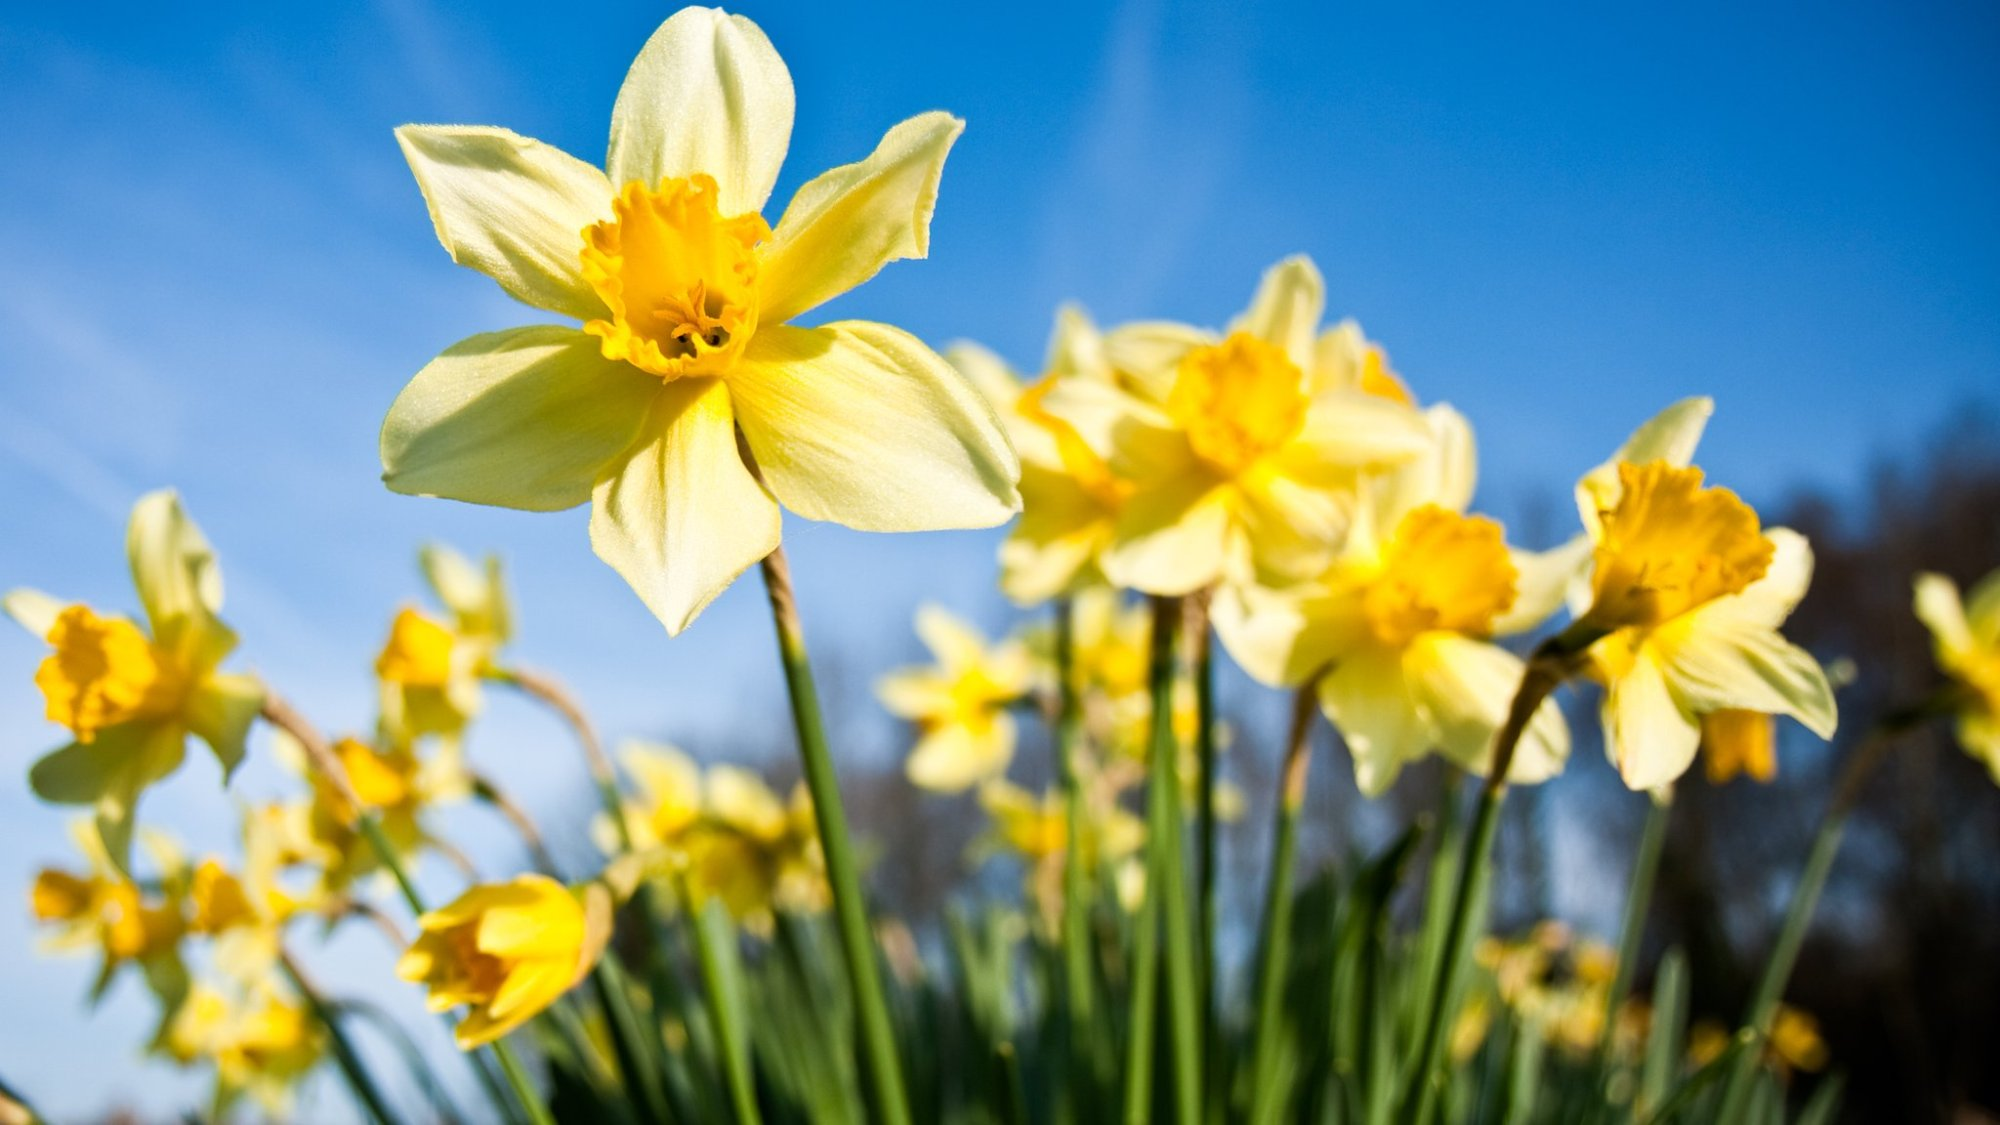 hight resolution of spring equinox 2019 why are nights and days different lengths over the year cbbc newsround